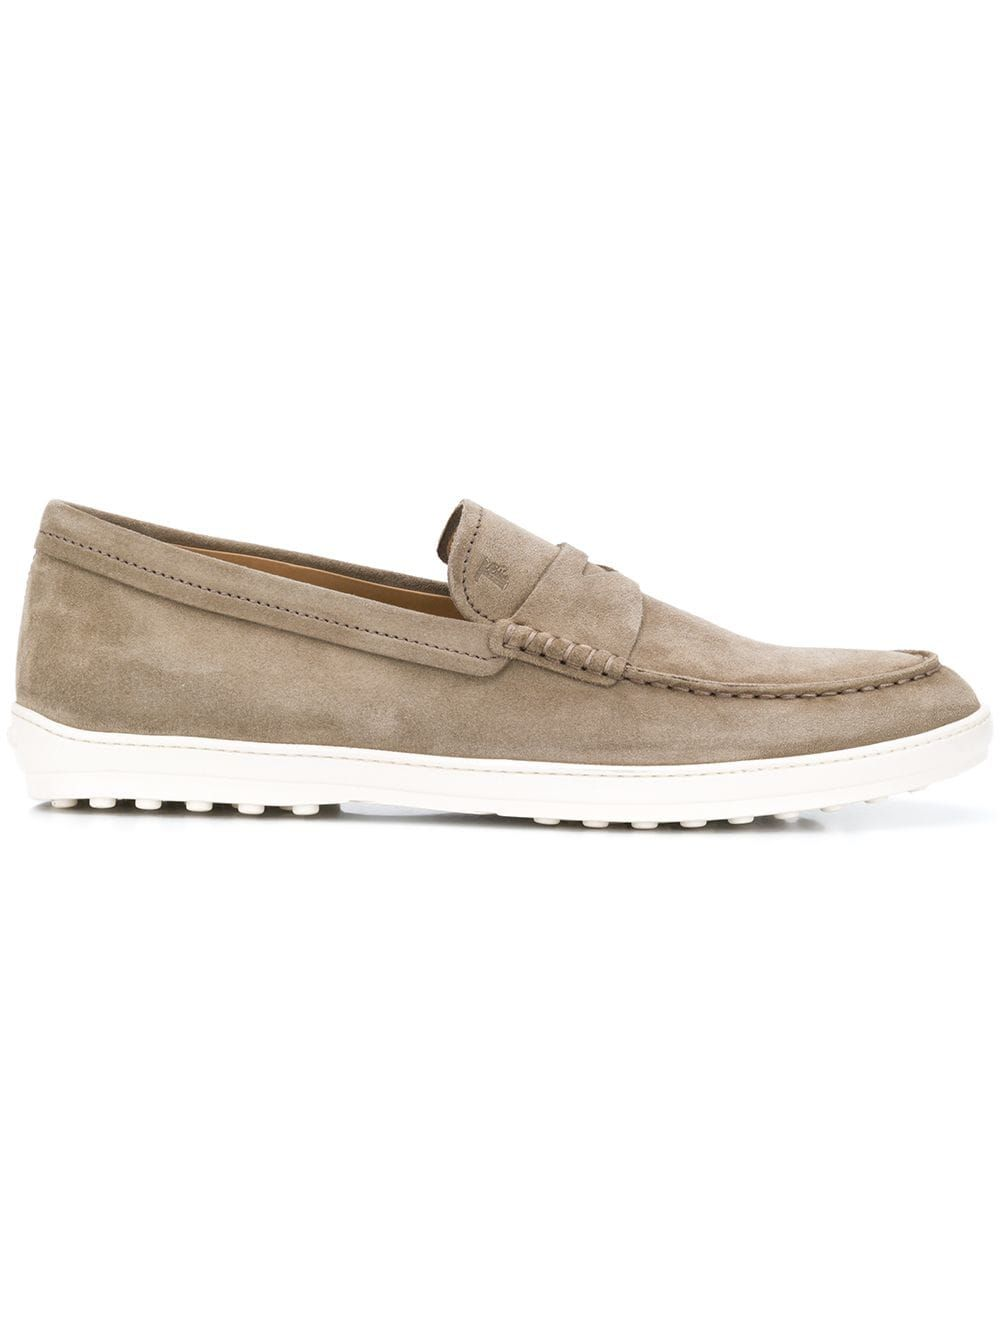 678b813581b TOD S TOD S THICK SOLE LOAFERS - NEUTRALS.  tods  shoes